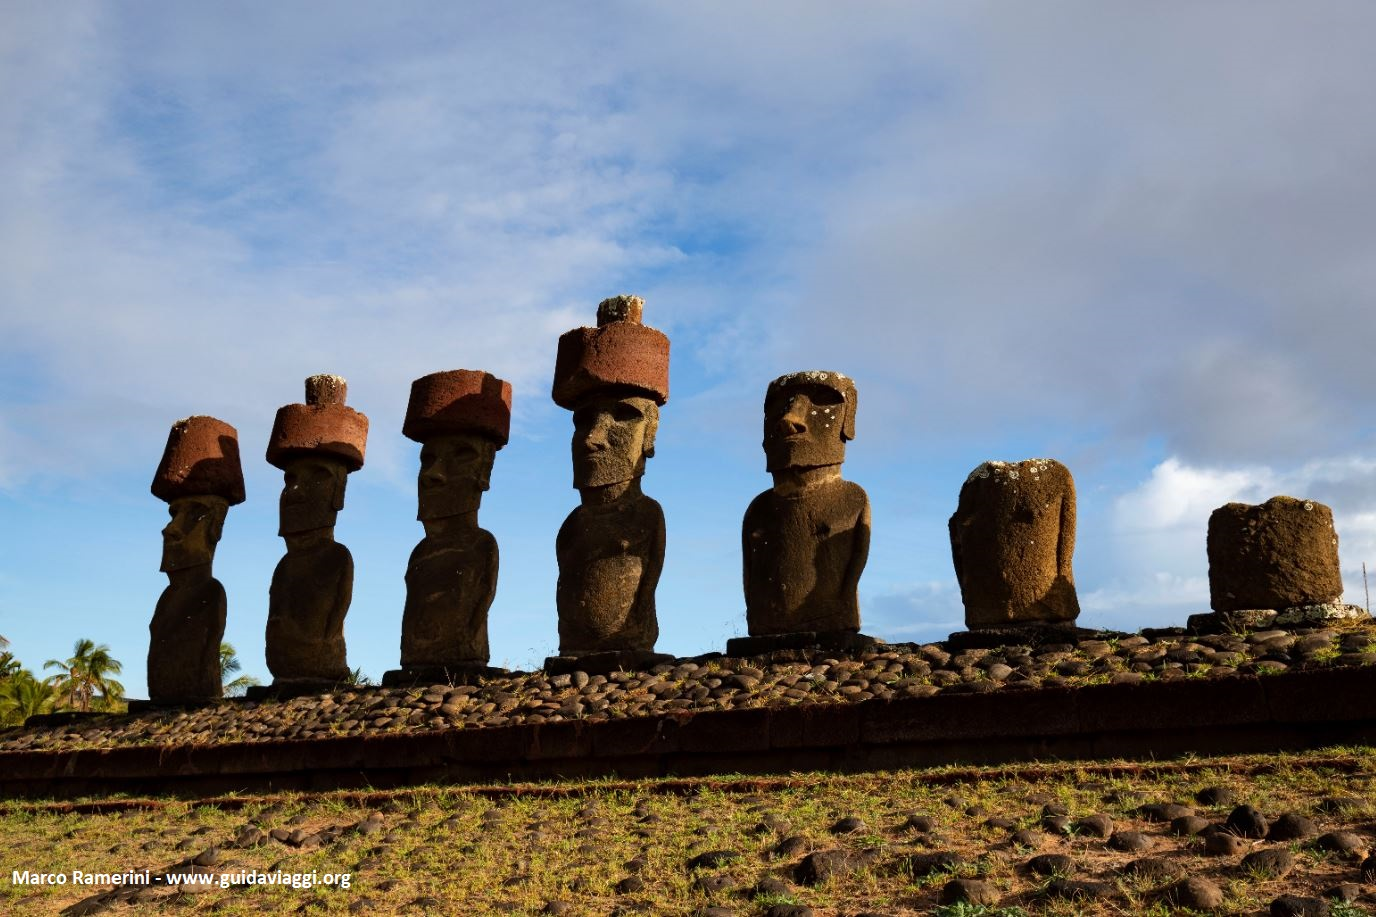 Ahu Nau Nau, Anakena, Easter Island, Chile. Author and Copyright Marco Ramerini